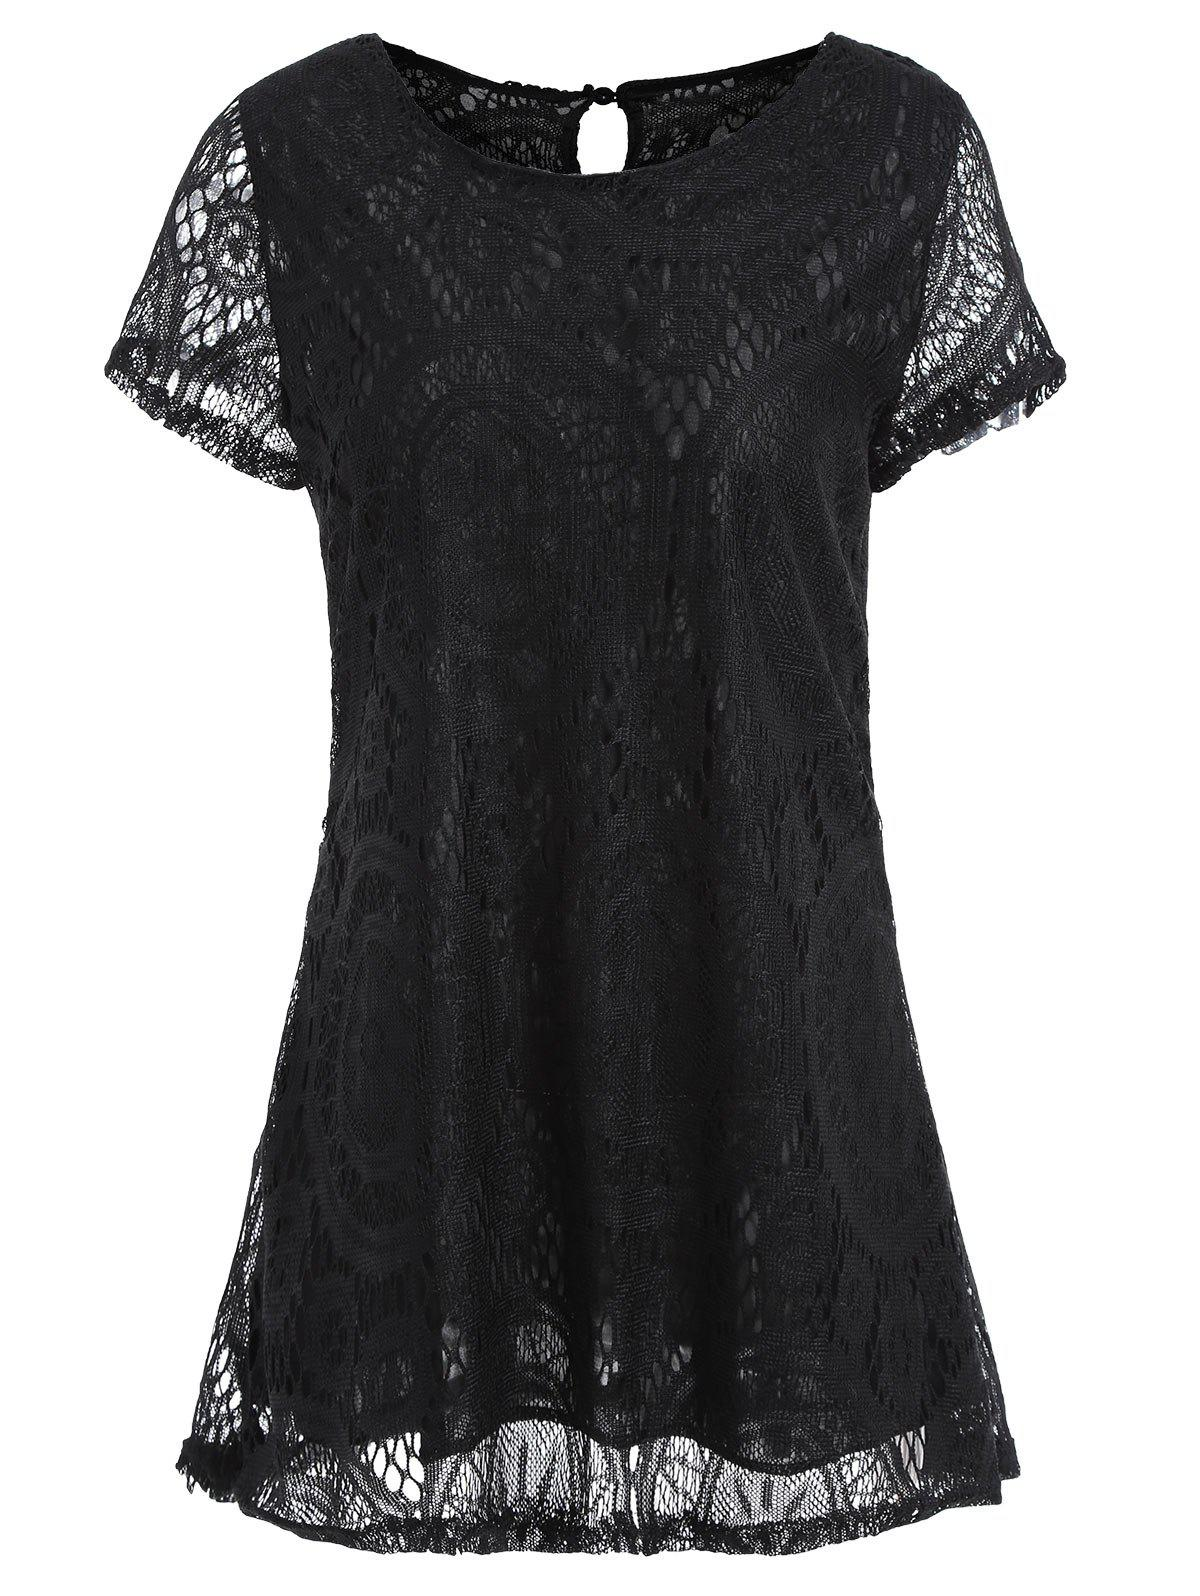 Long Plus Size Short Sleeve Lace TeeWOMEN<br><br>Size: XL; Color: BLACK; Material: Polyester; Shirt Length: Long; Sleeve Length: Short; Collar: Round Neck; Style: Fashion; Season: Spring,Summer; Pattern Type: Solid; Weight: 0.2260kg; Package Contents: 1 x Tee;